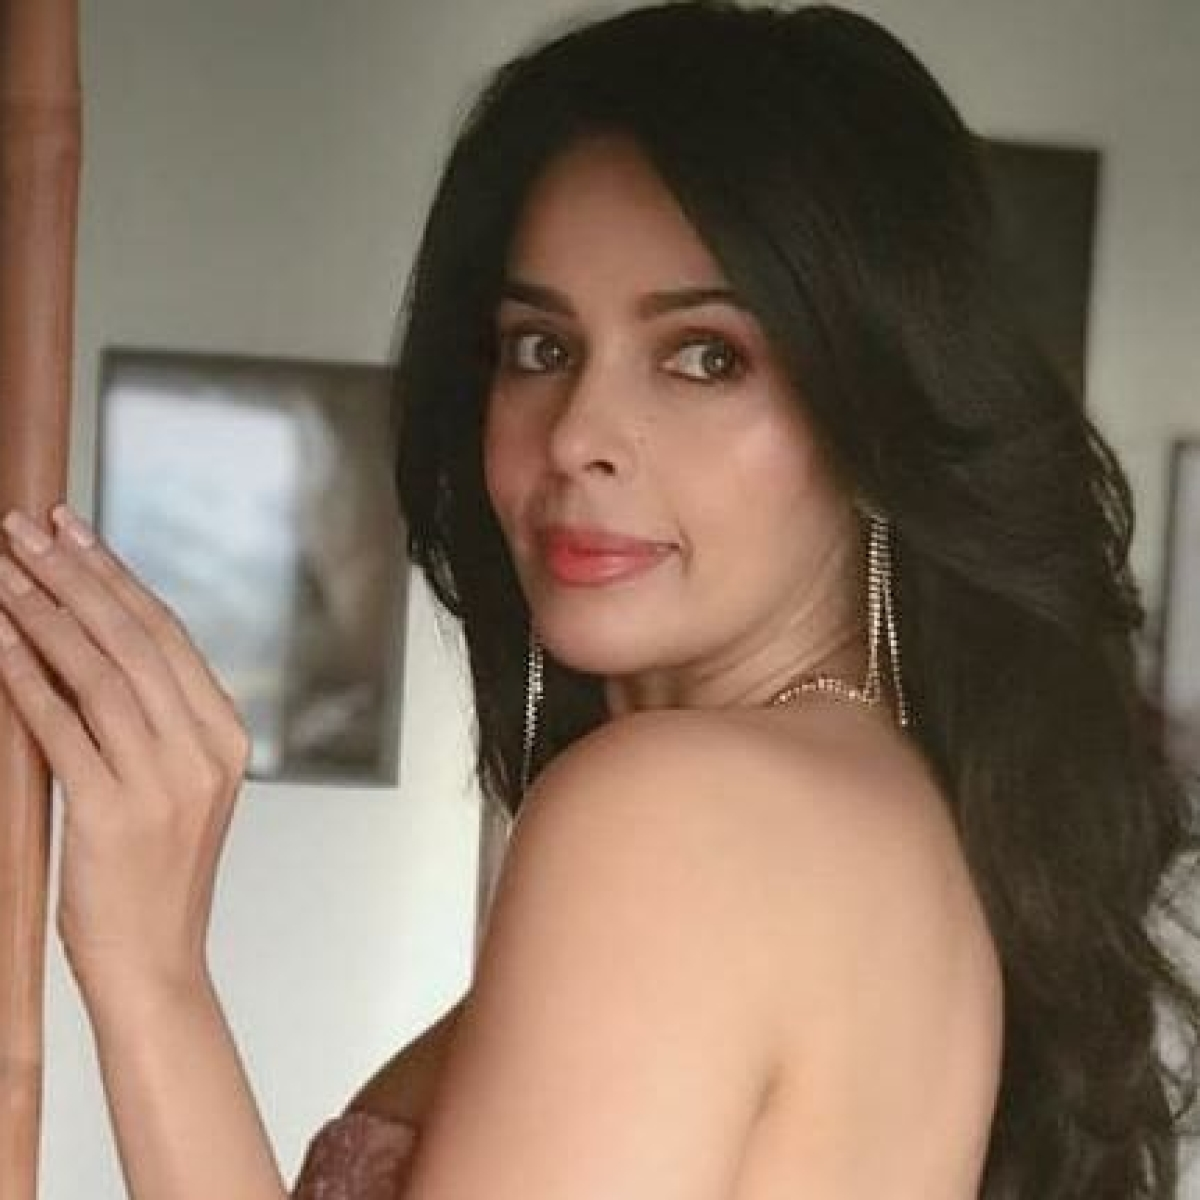 'I was seen as a fallen woman': Mallika Sherawat on the backlash she faced for bold scenes in 'Murder'